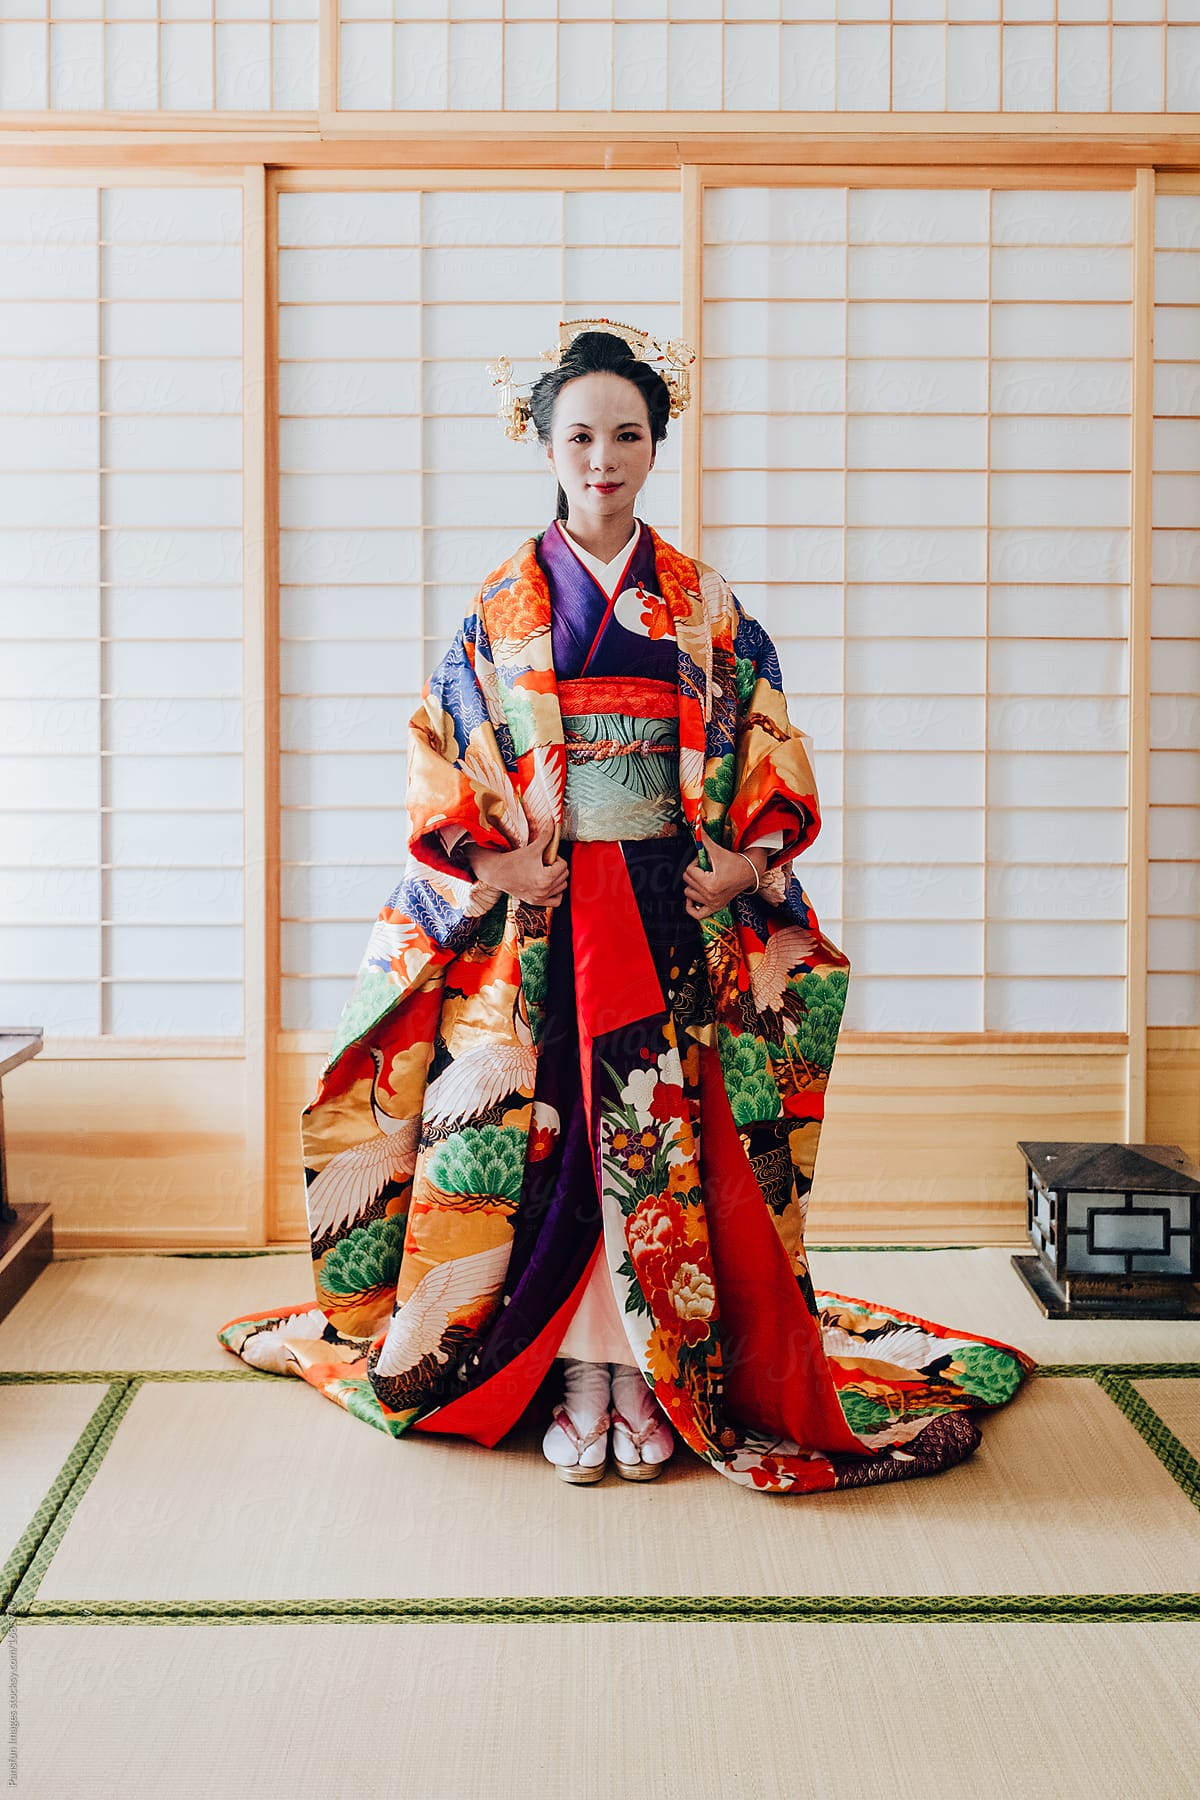 asian woman in traditional kimono clothing  stocksy united